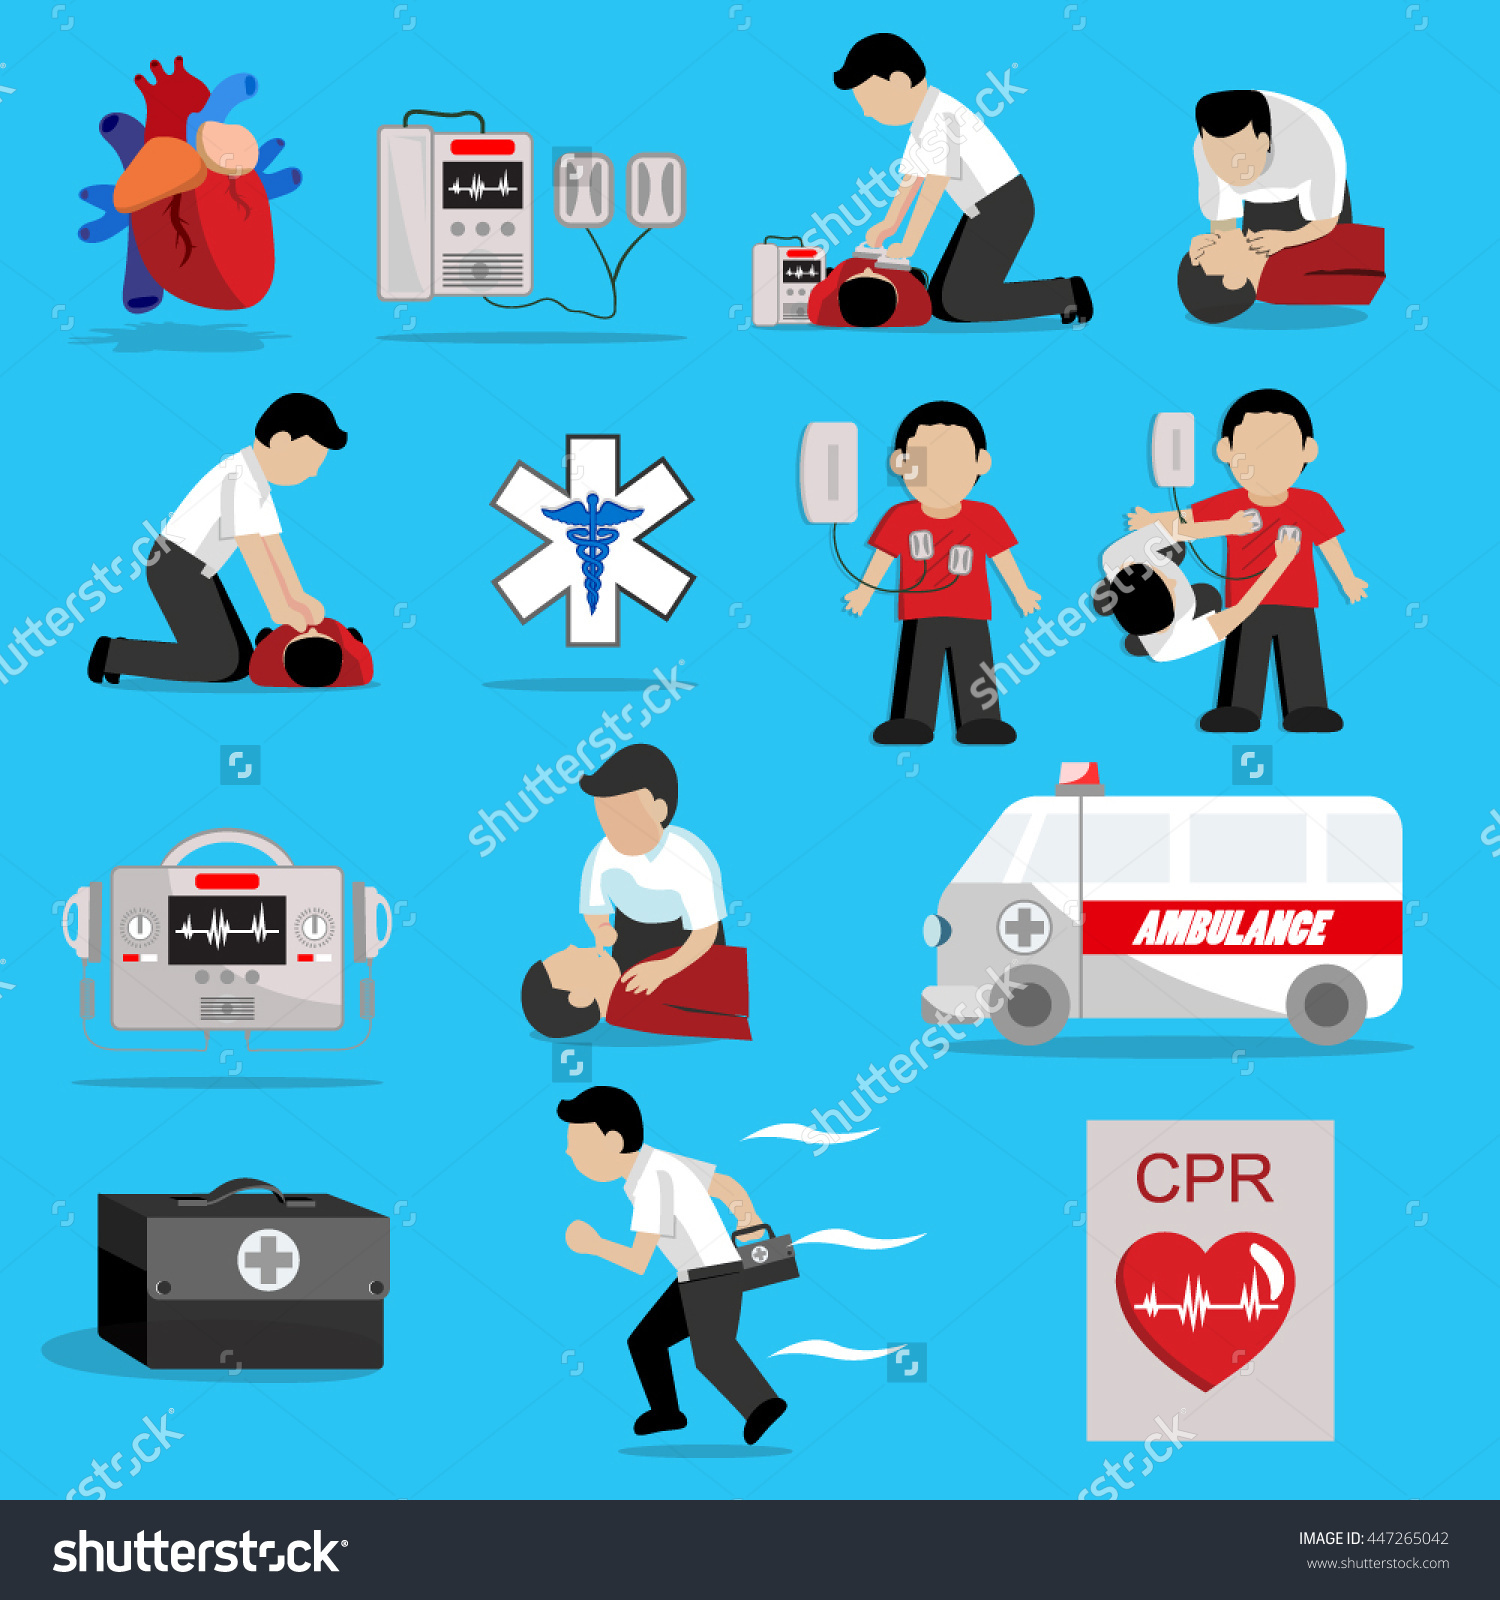 Cpr Cardiopulmonary Resuscitation Basic Life Support Stock Vector.